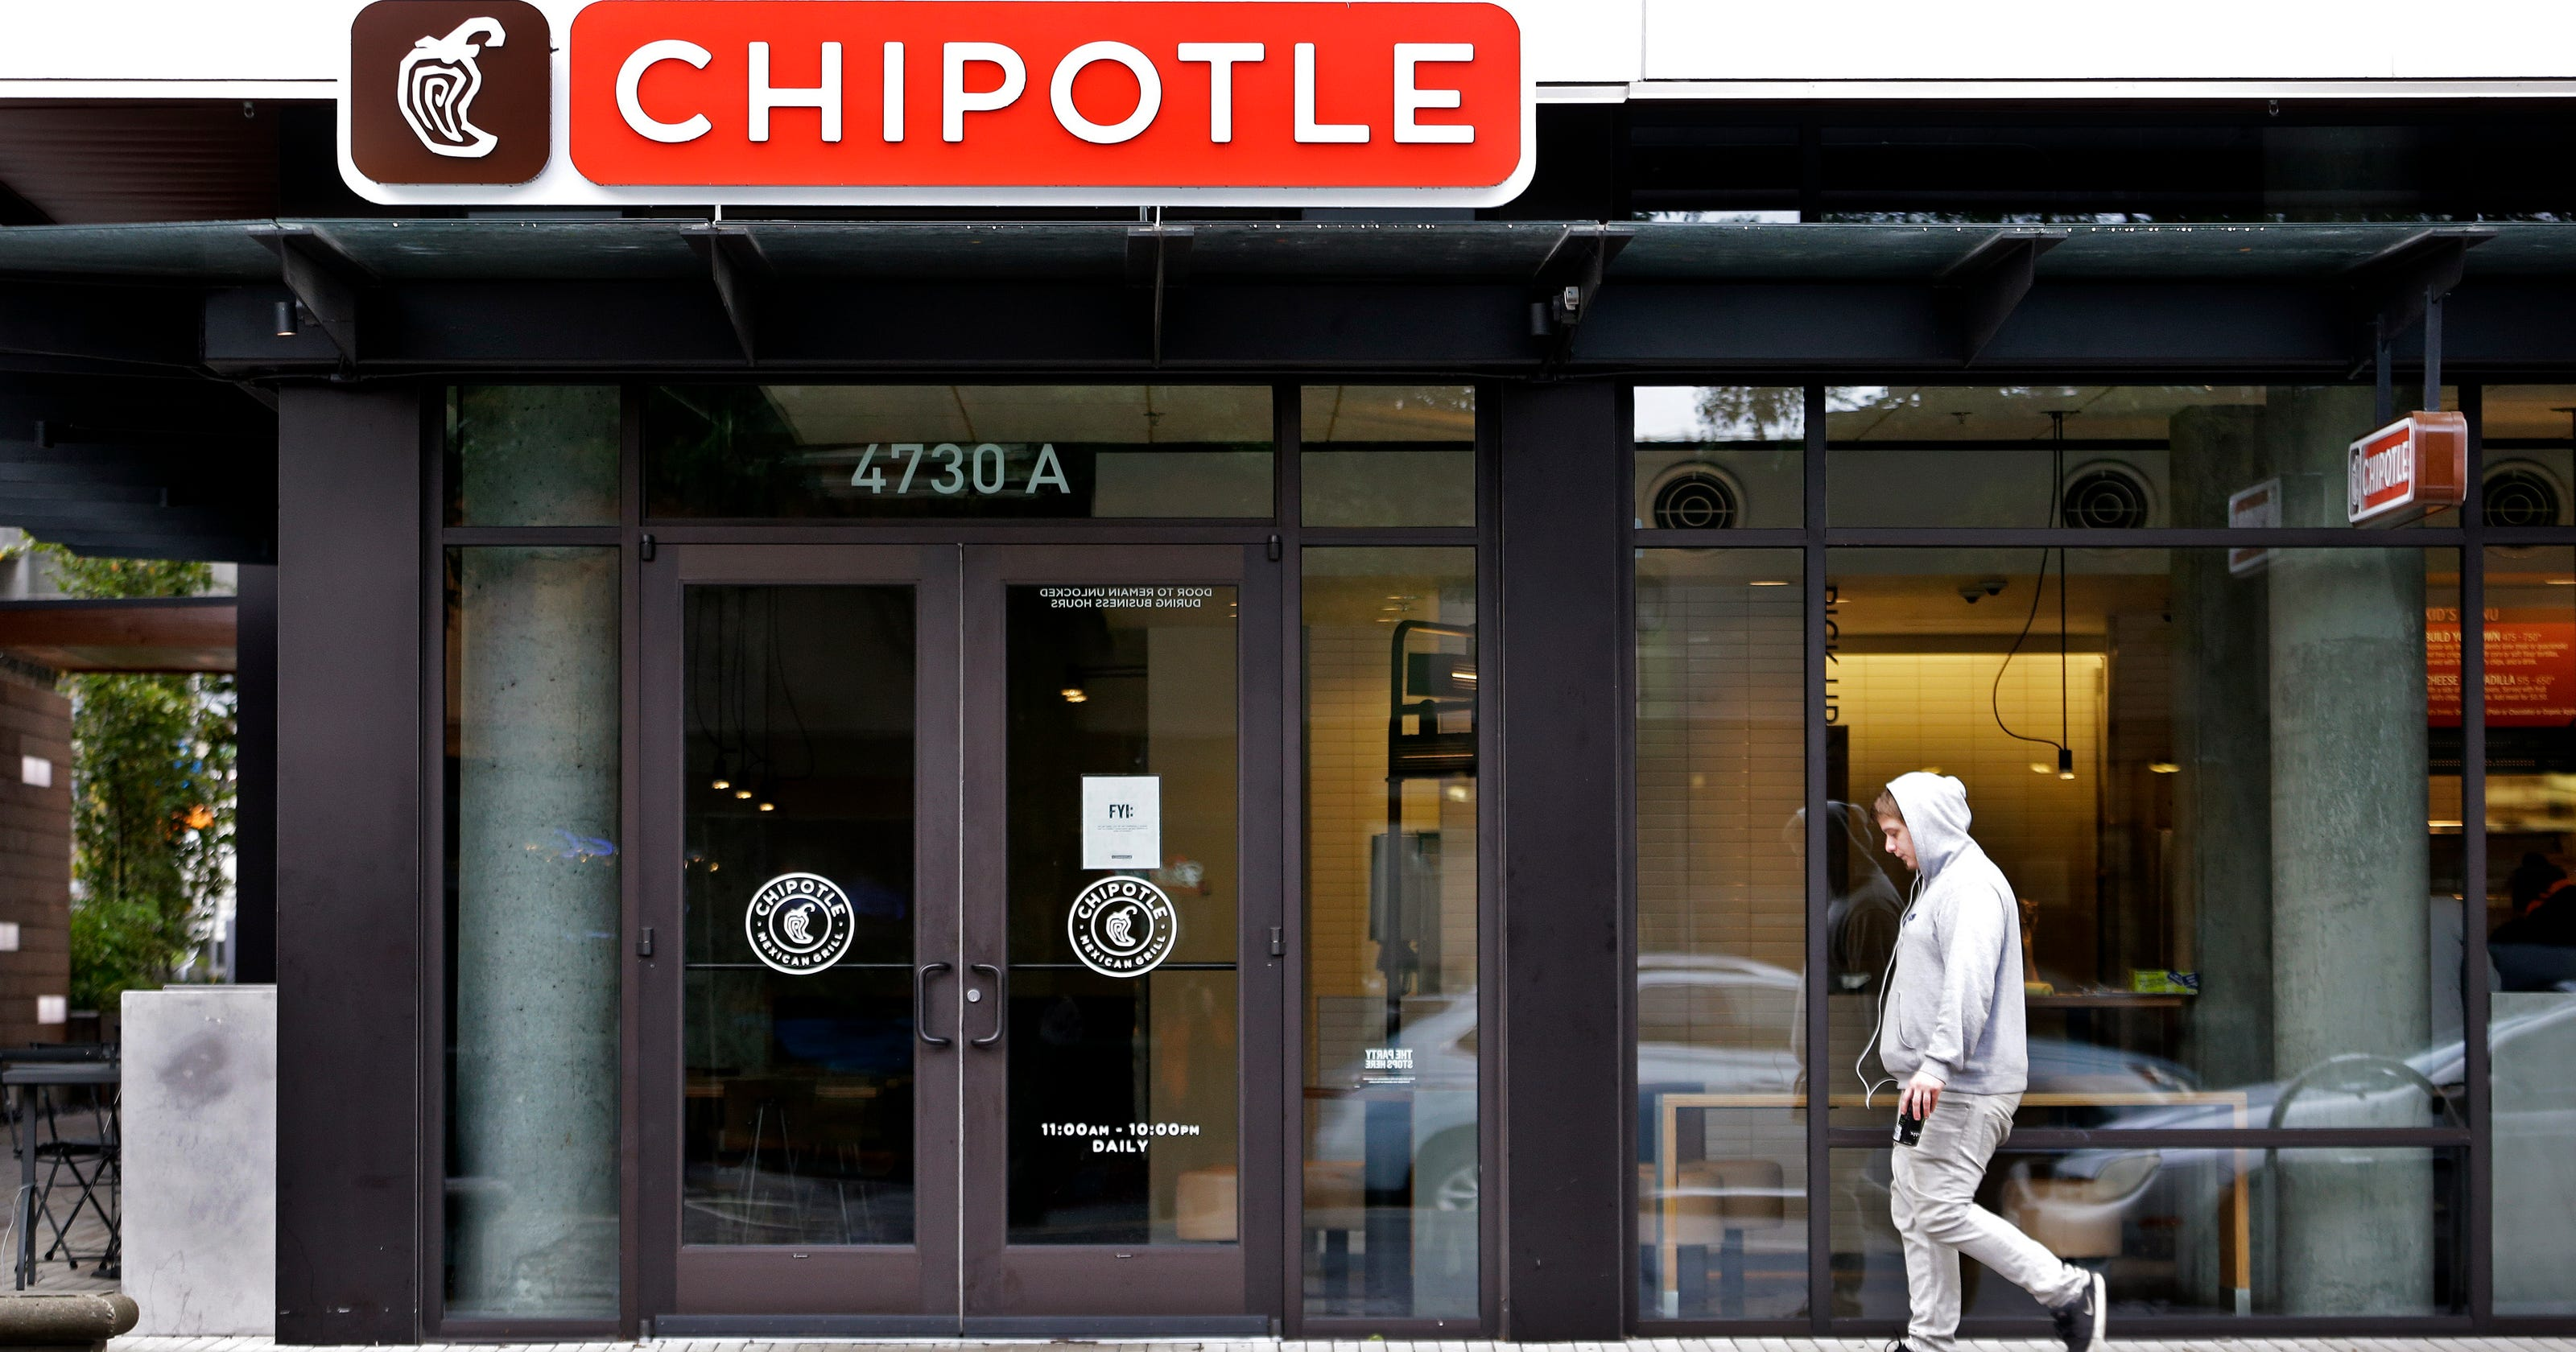 More legal trouble for Chipotle